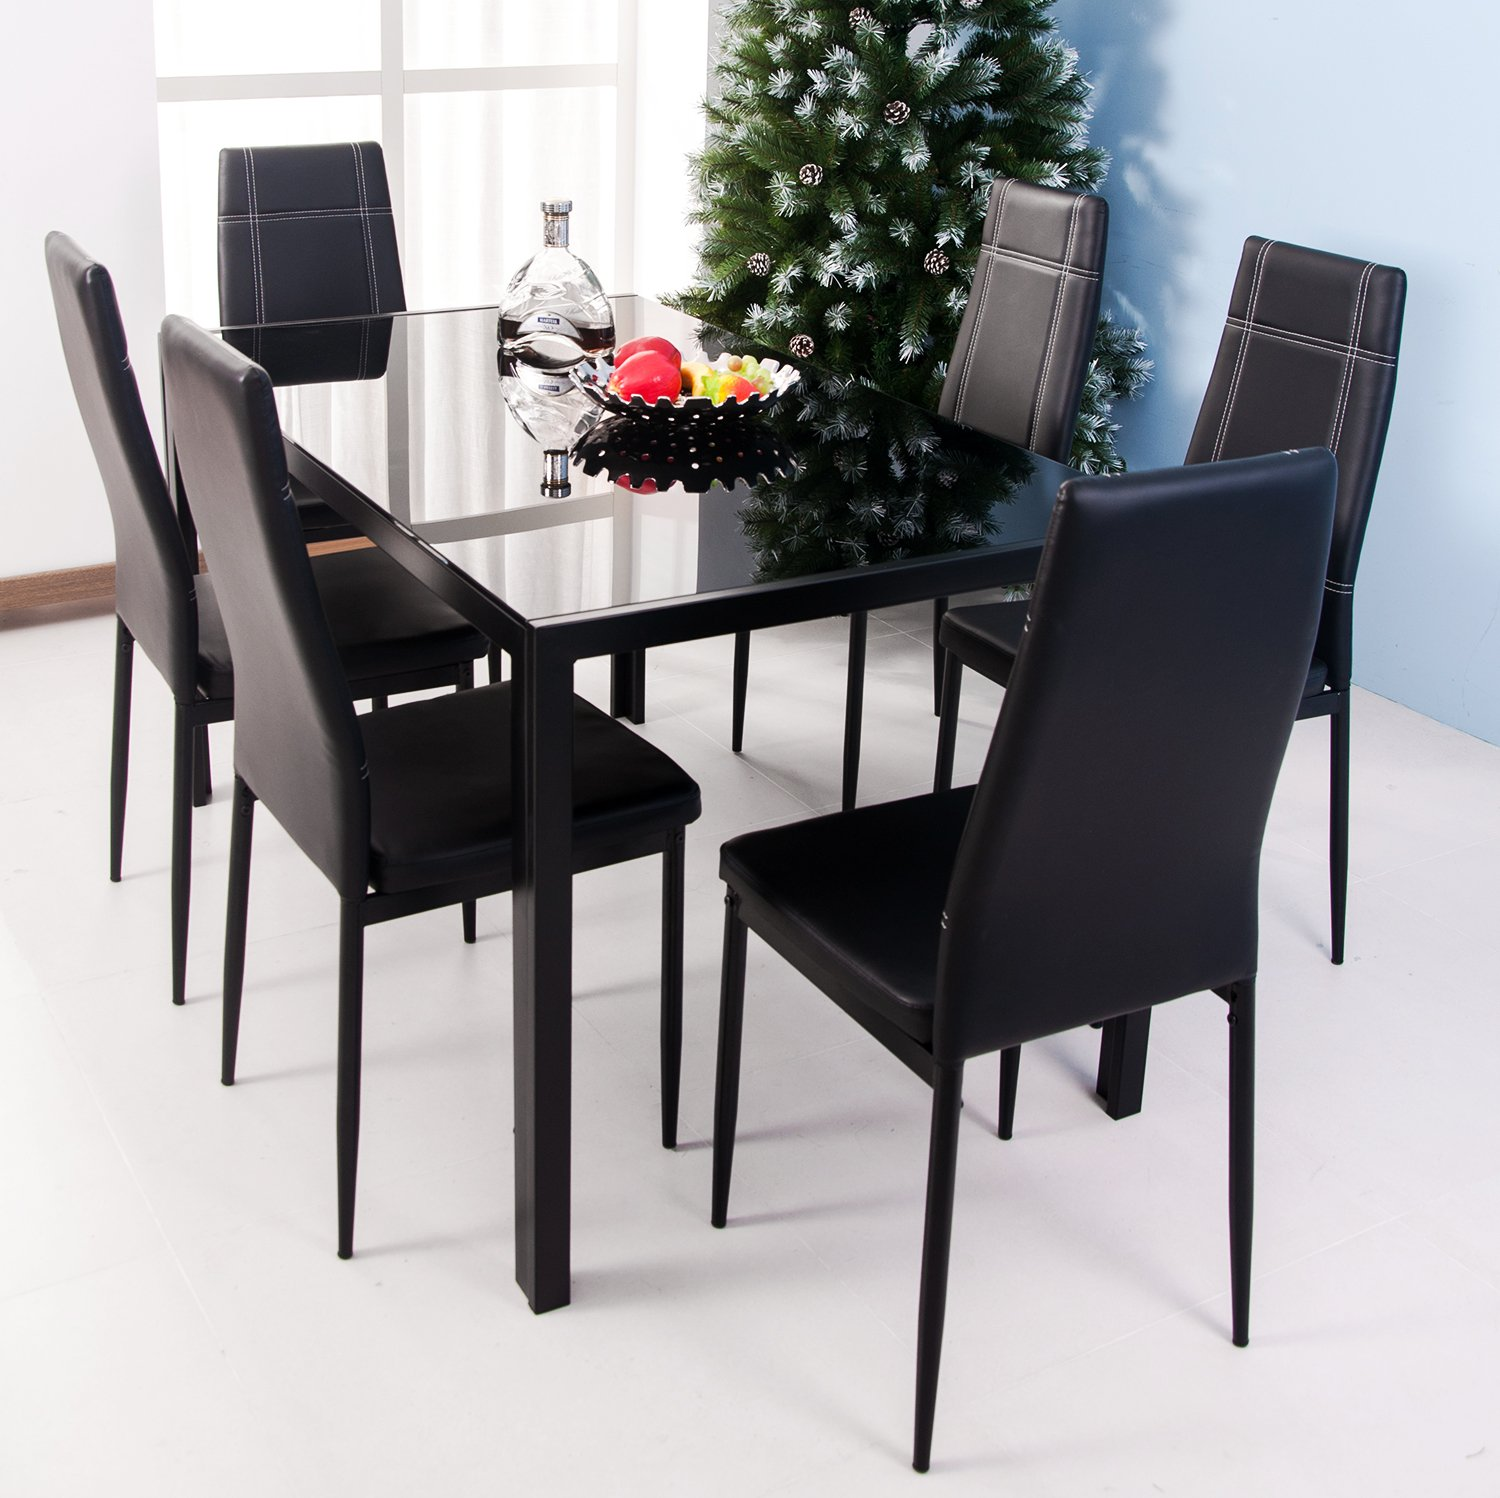 Amazon com  Merax 7 piece Dining Set Glass Top Metal Table 6 Person Table  and Chairs  55 Inch  Black   Kitchen   Dining. Amazon com  Merax 7 piece Dining Set Glass Top Metal Table 6